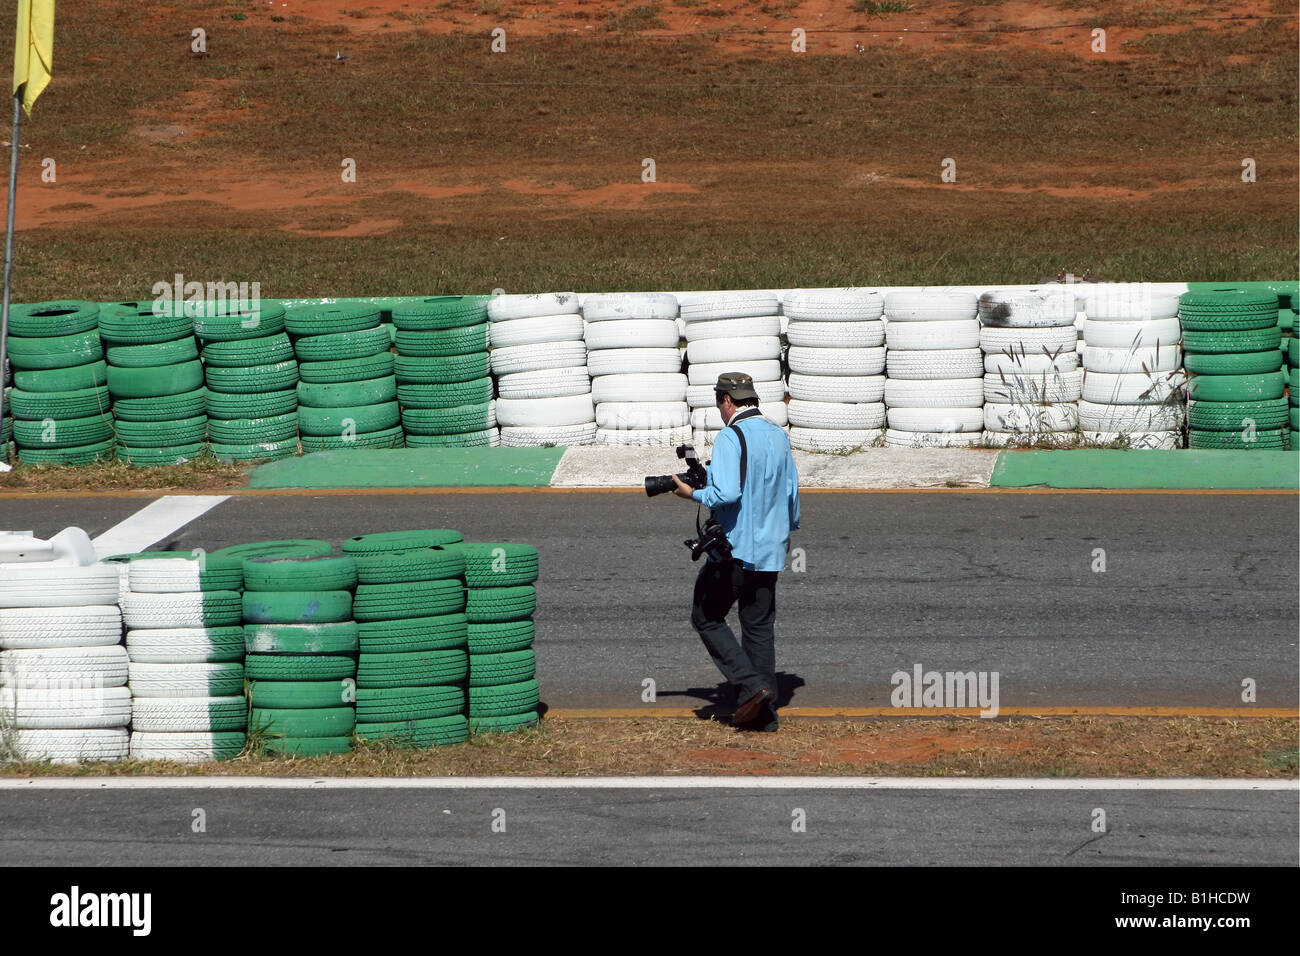 Press Photographer Working, Brasilia, Brazil, South America - Stock Image